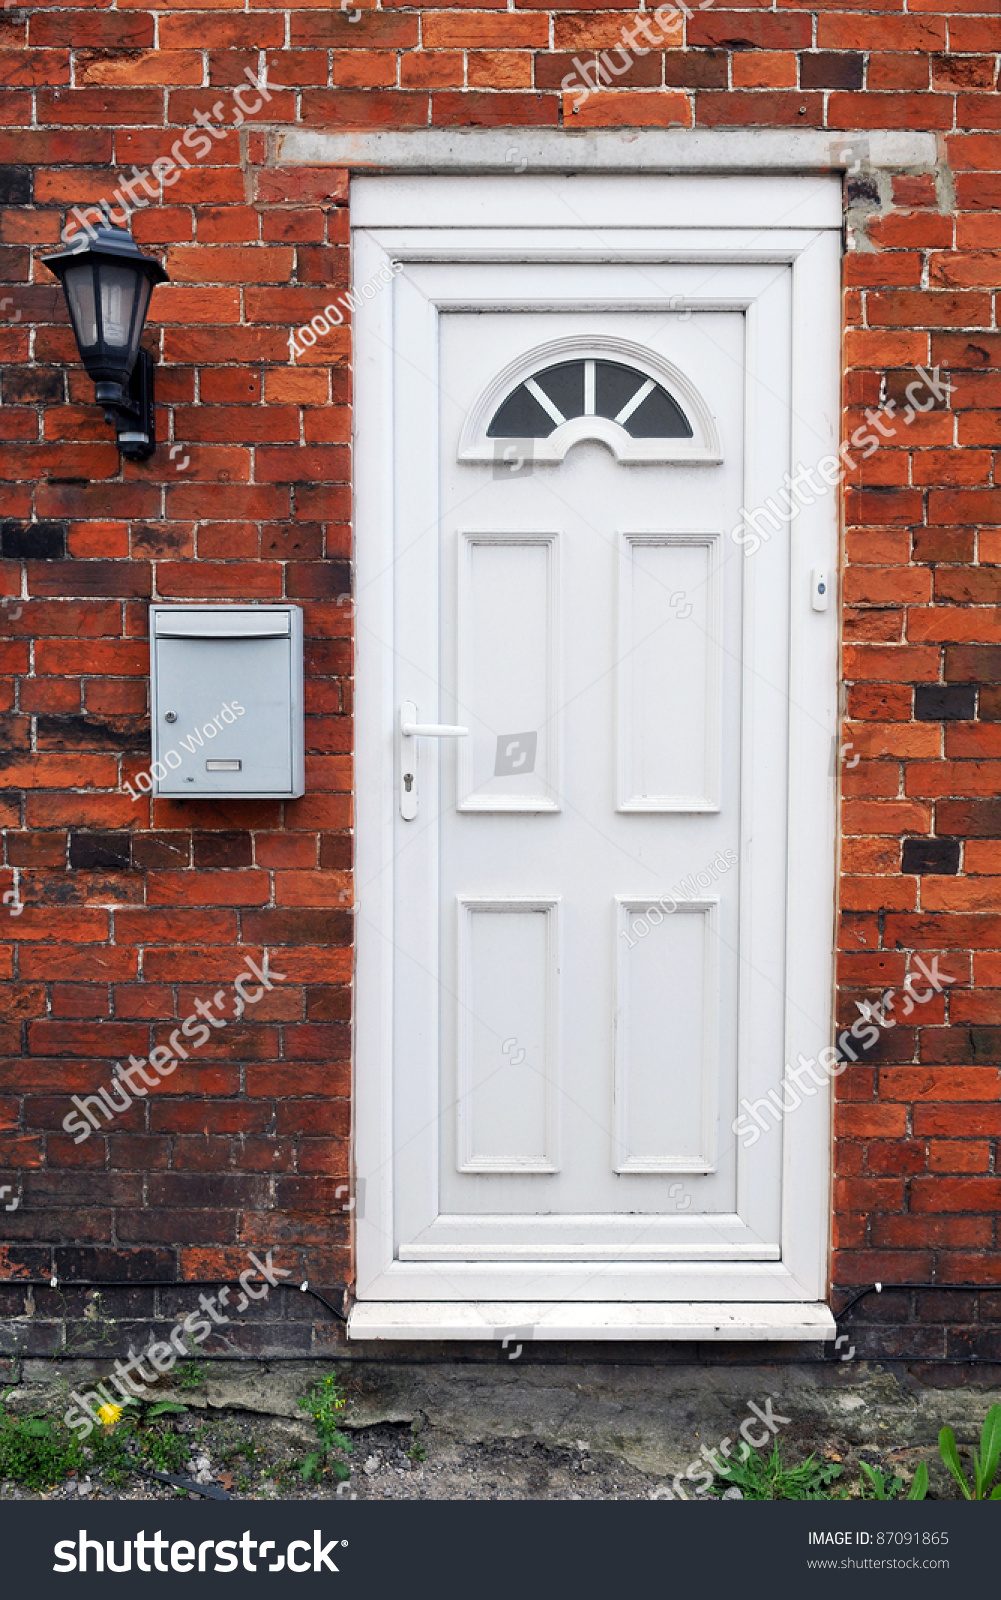 White Front Door Of A Red Brick English Town House Stock